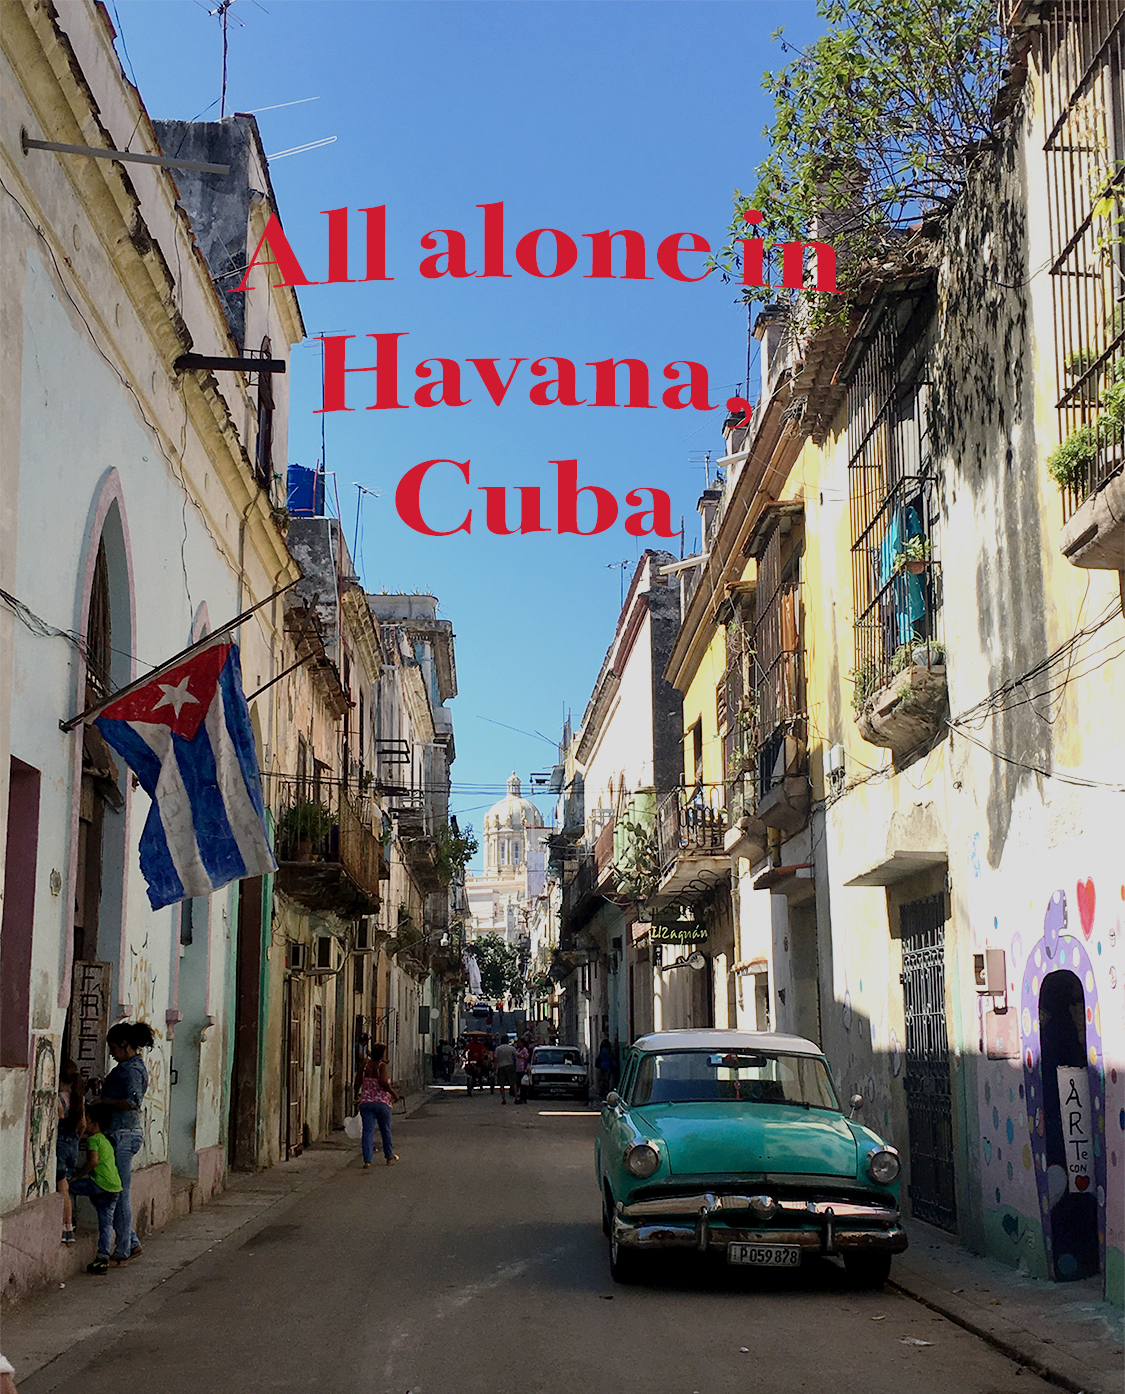 A Day alone in Havana